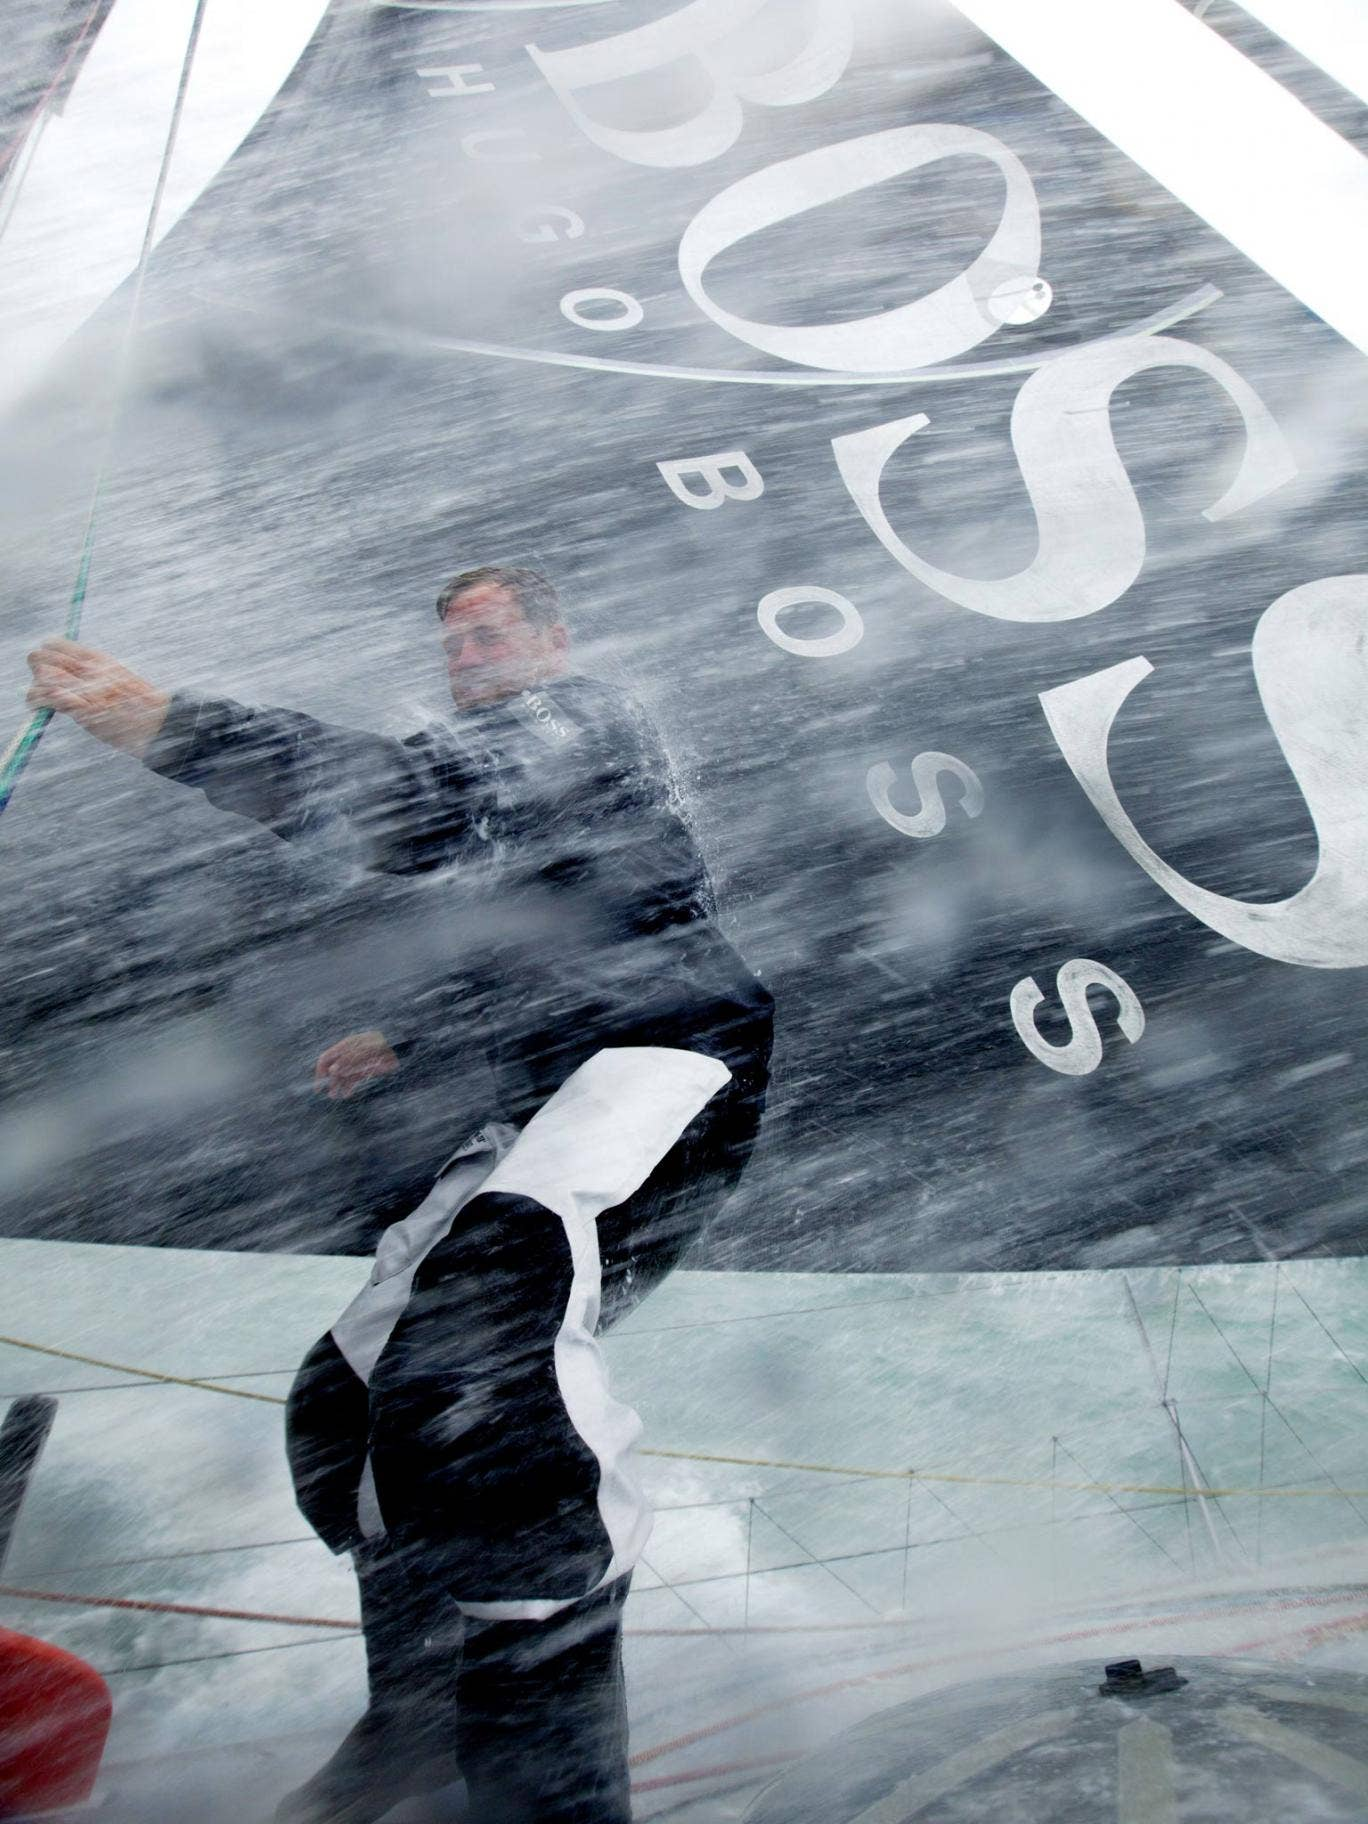 Conditions have been hard, but a third place end is in sight for Alex Thomson in the Vendée Globe singlehanded non-stop round the world race